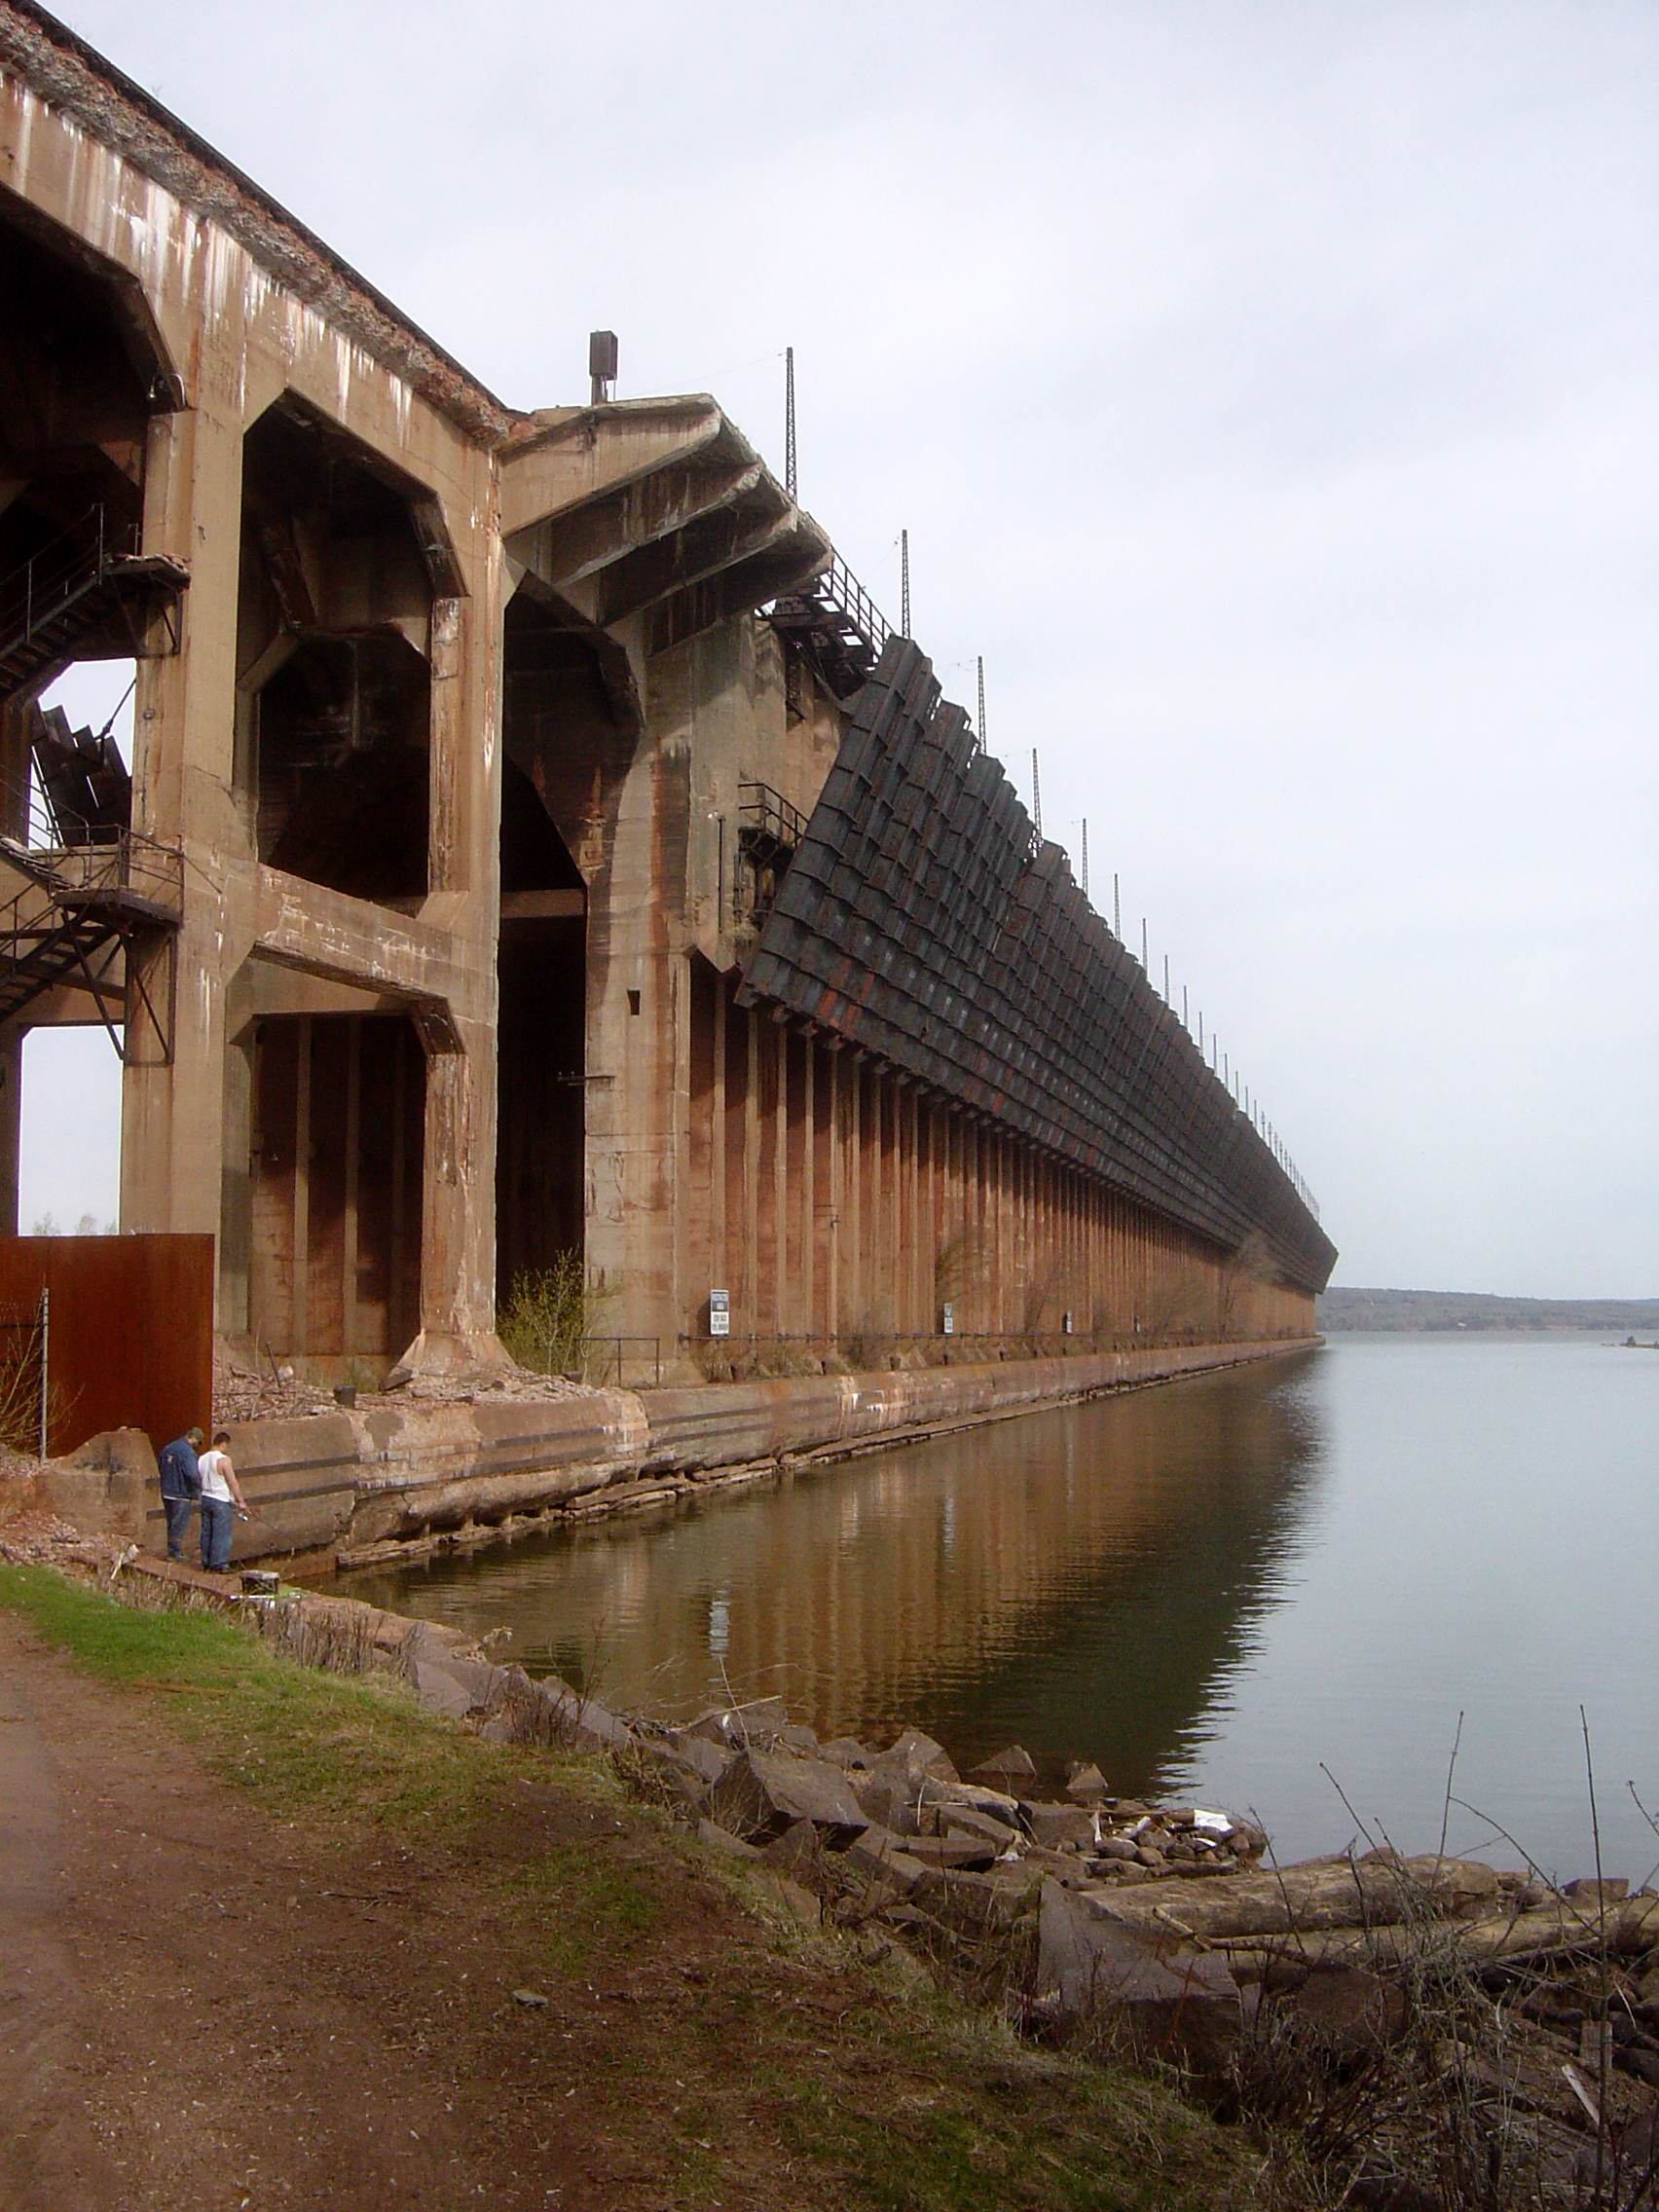 The iron ore dock in 2007 before it was demolished